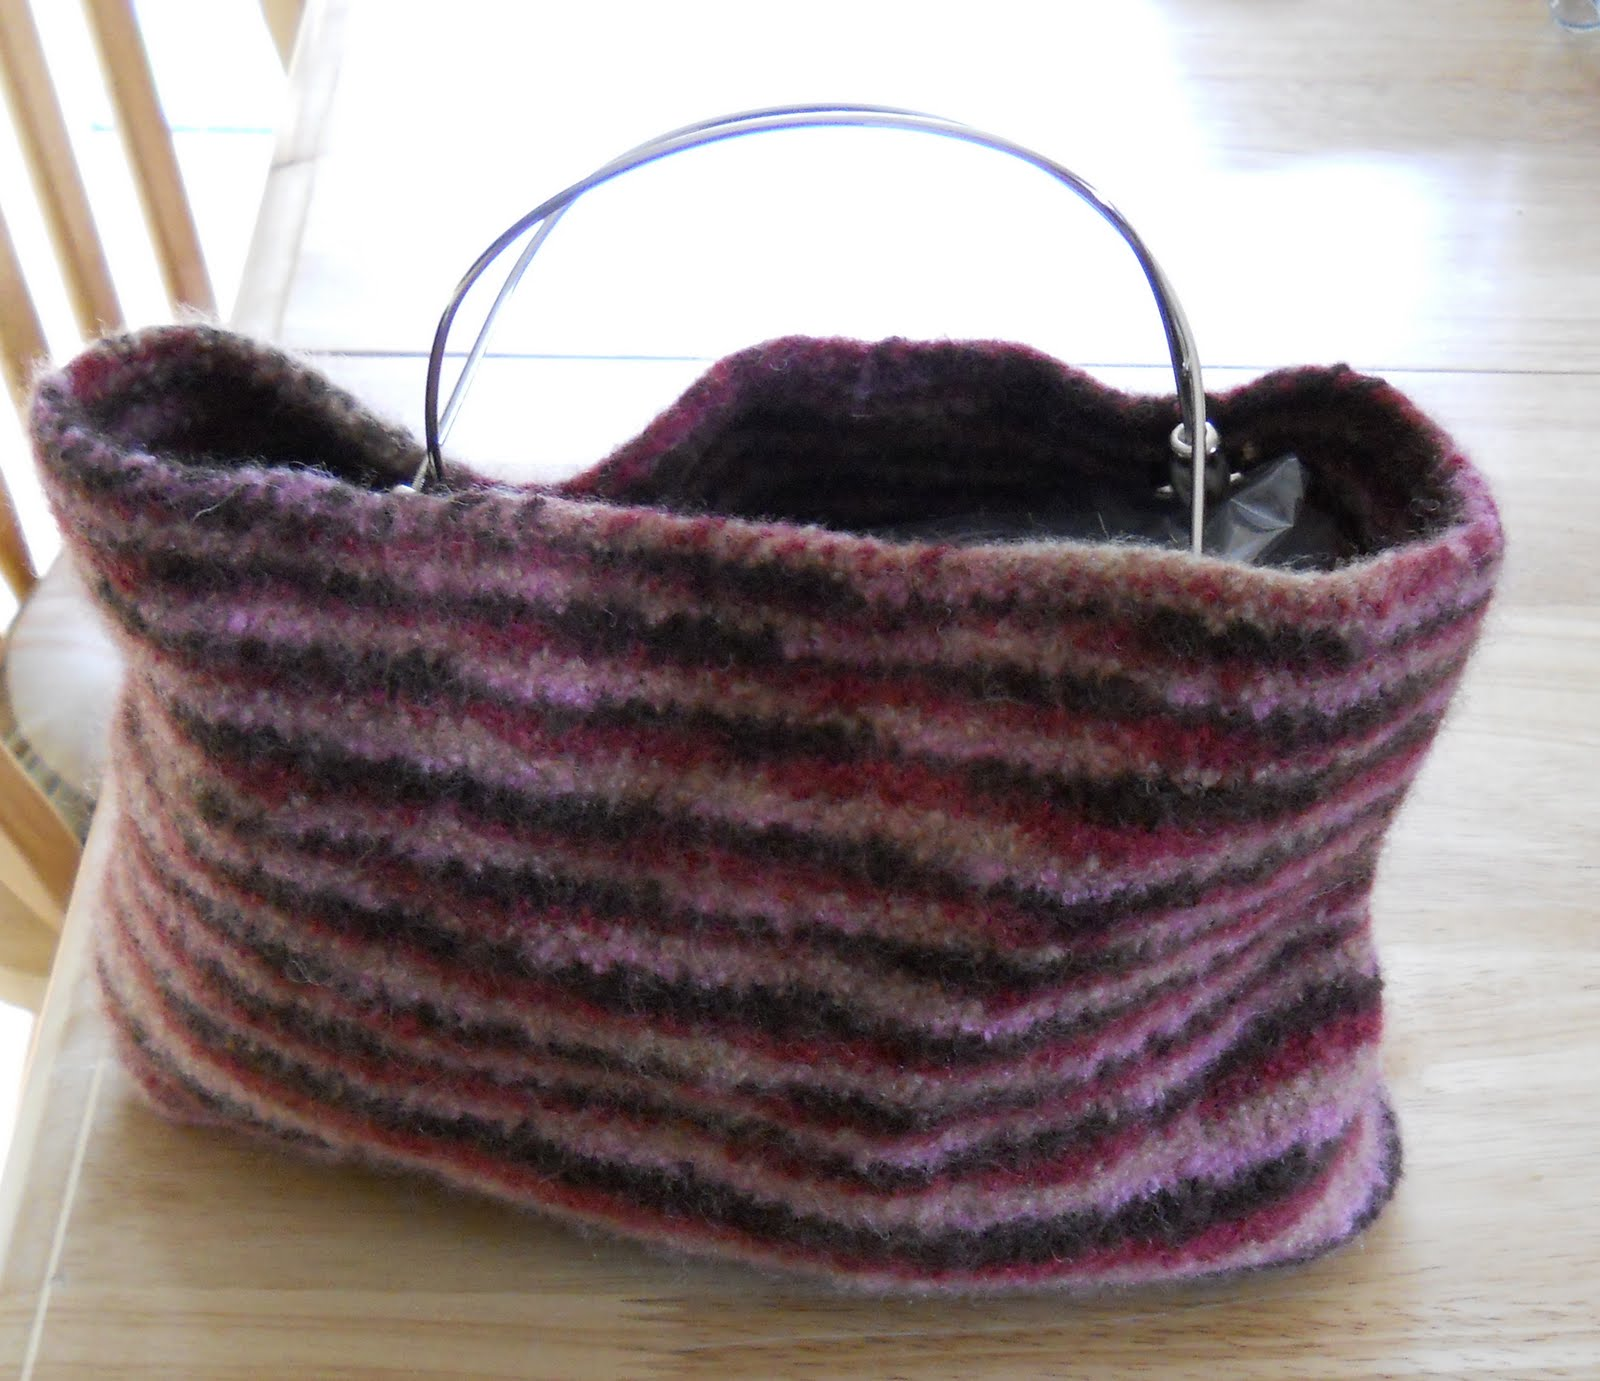 Knitted Purse Pattern : Knitting with Schnapps: Finally finished - a felted bag!